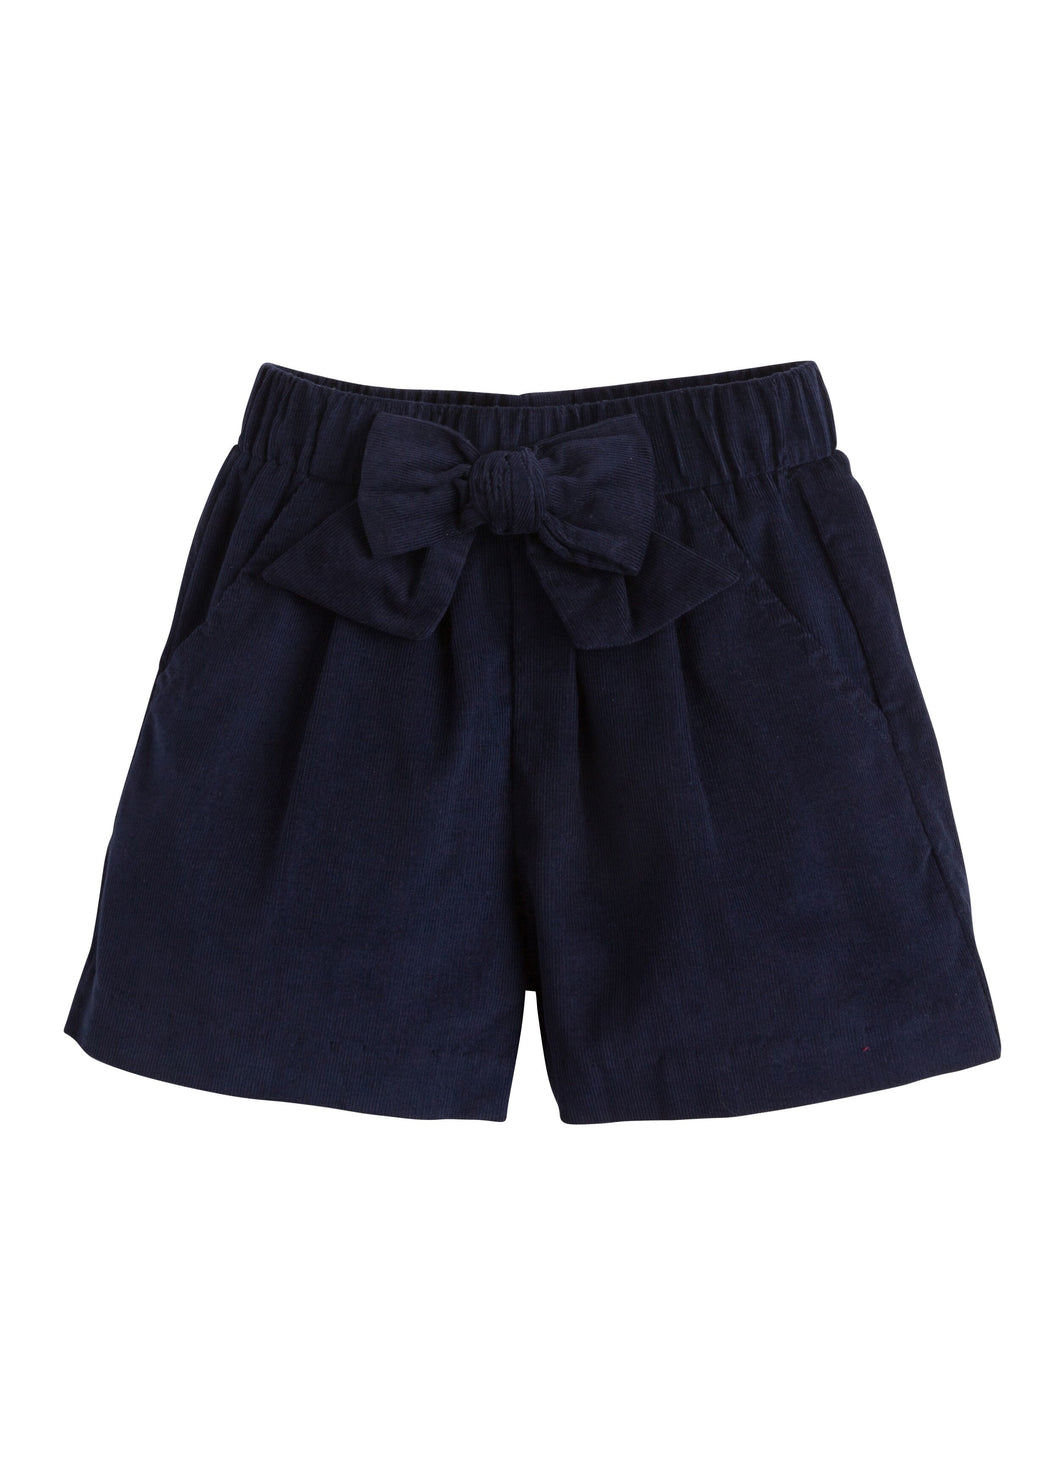 Bow Shorts - Navy Corduroy